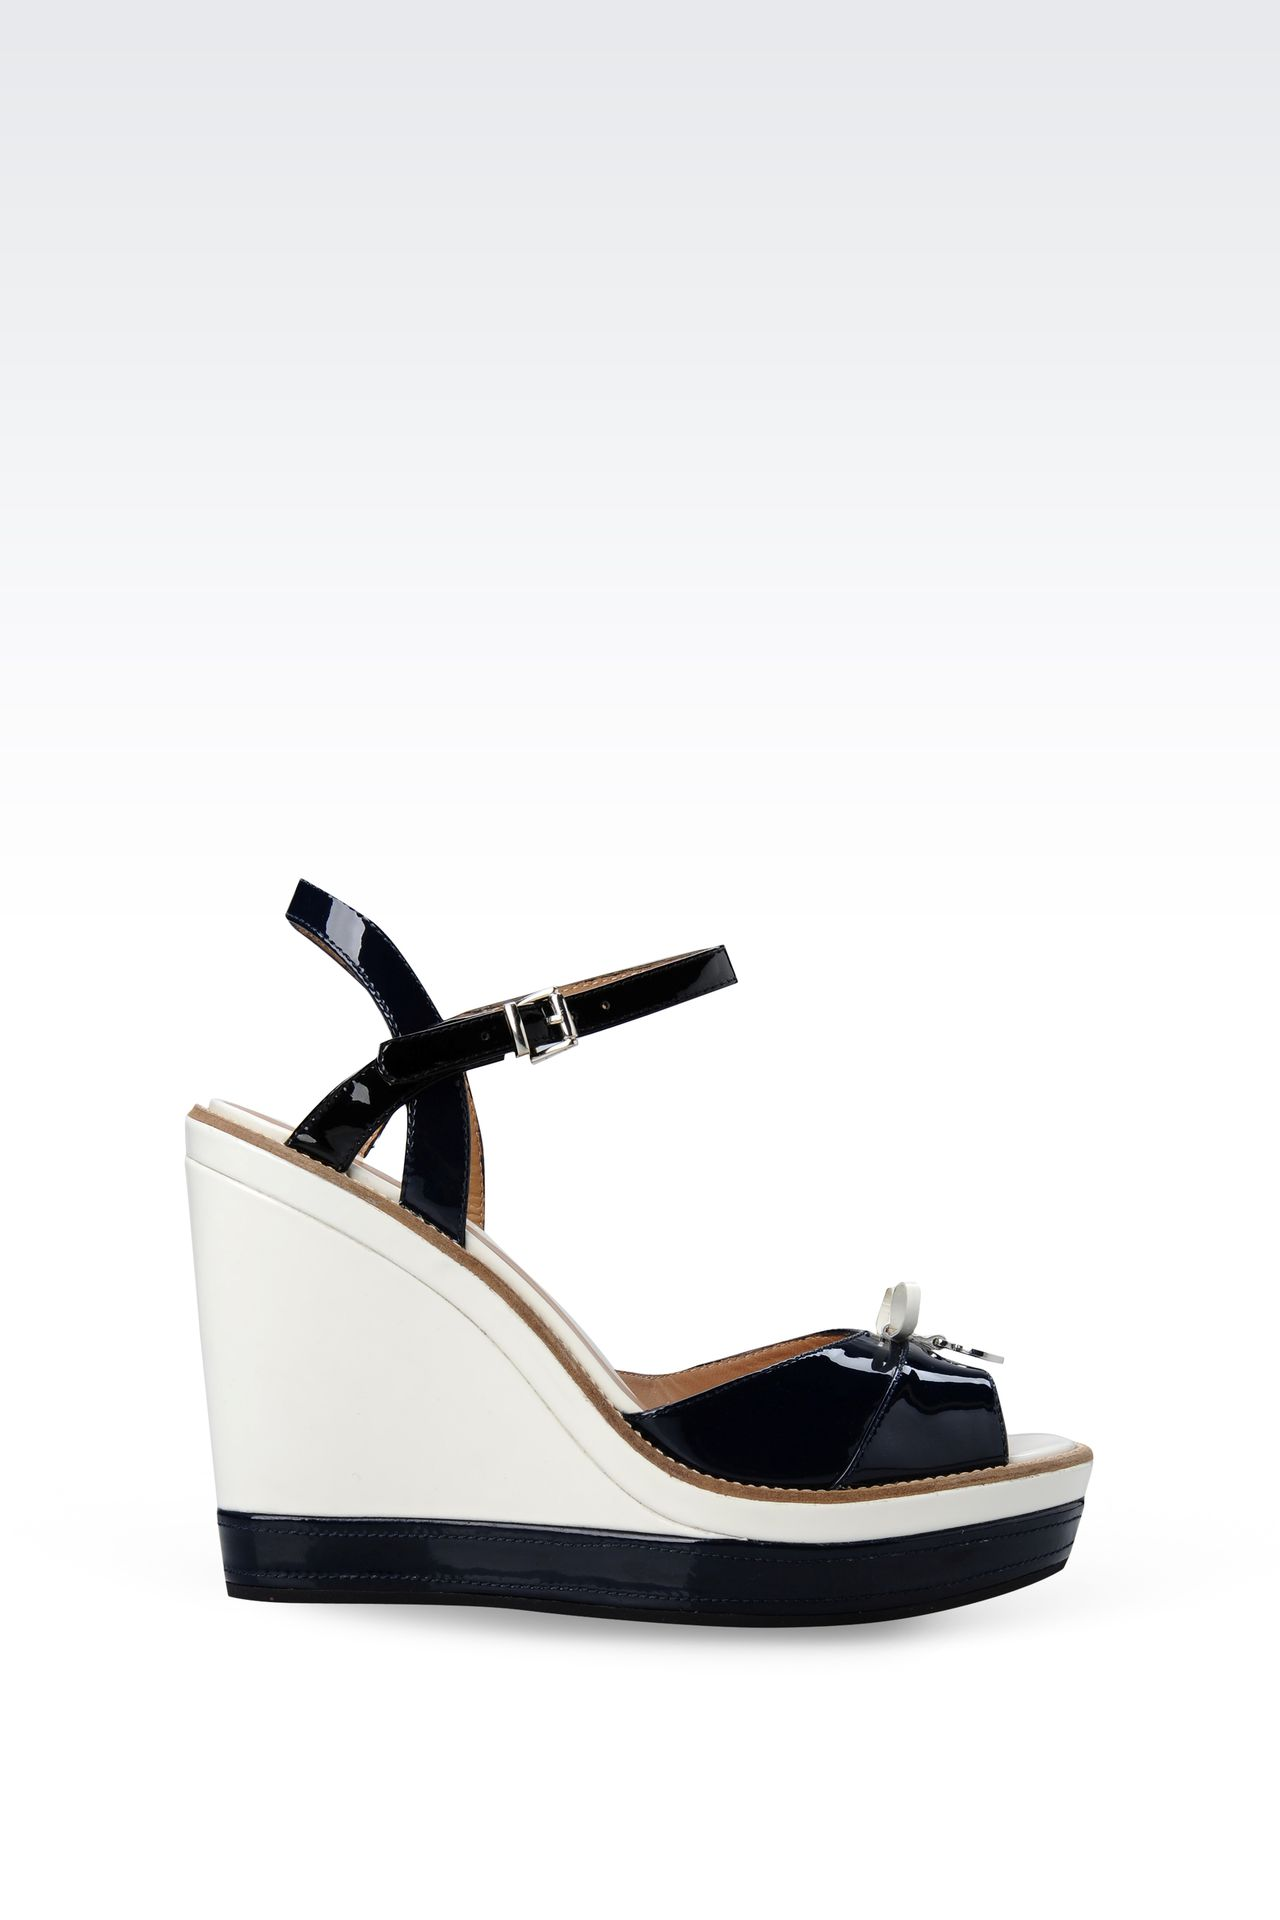 WEDGE SANDAL IN TWO-COLOR PATENT EFFECT LEATHER: Wedges Women by Armani - 0